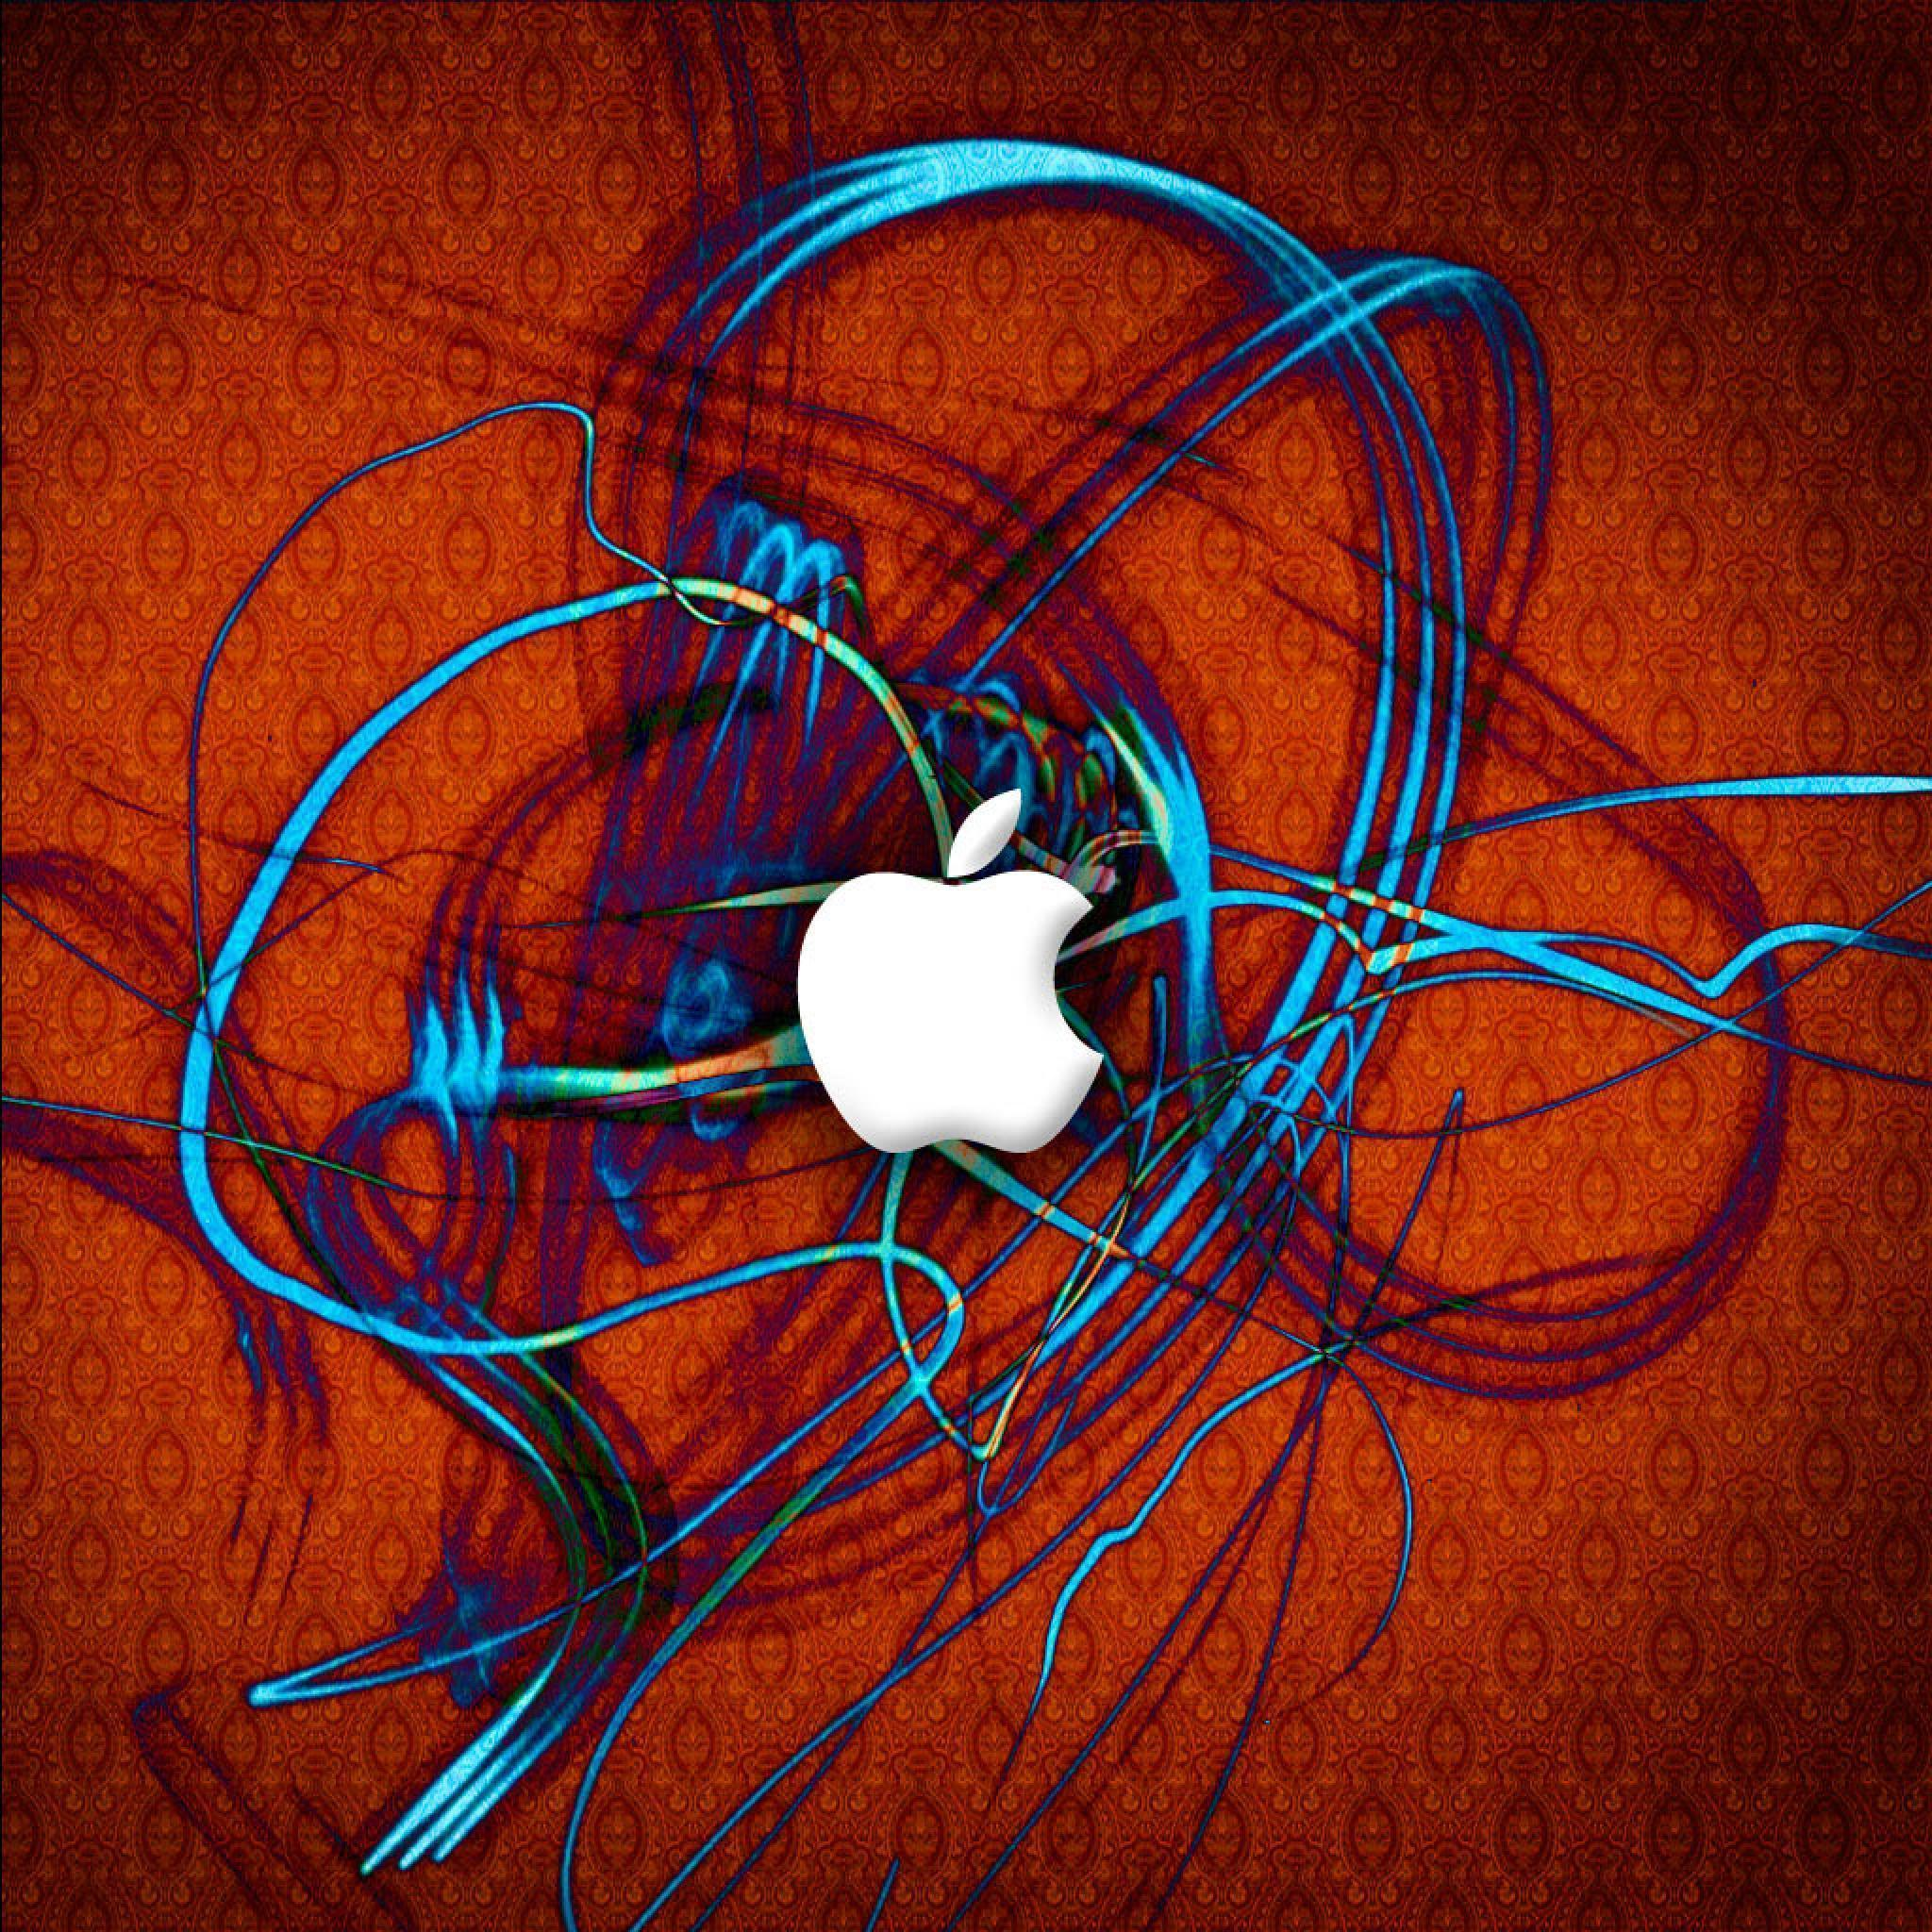 Computer Brand Retina iPad Apple Logo Red Electric Wallpapers for